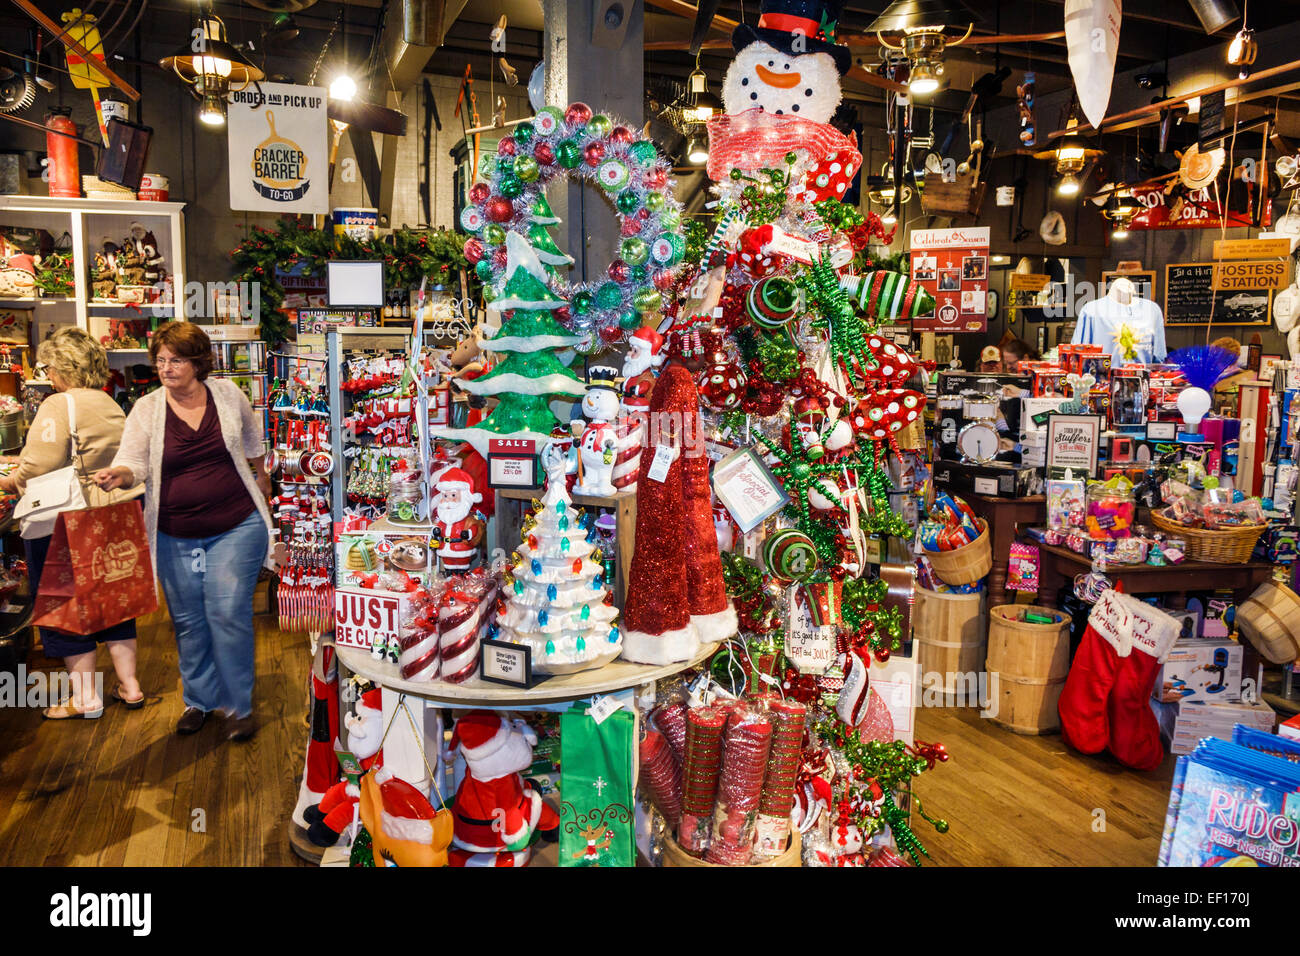 Vero Beach Florida Cracker Barrel Country Store shopping Christmas ...